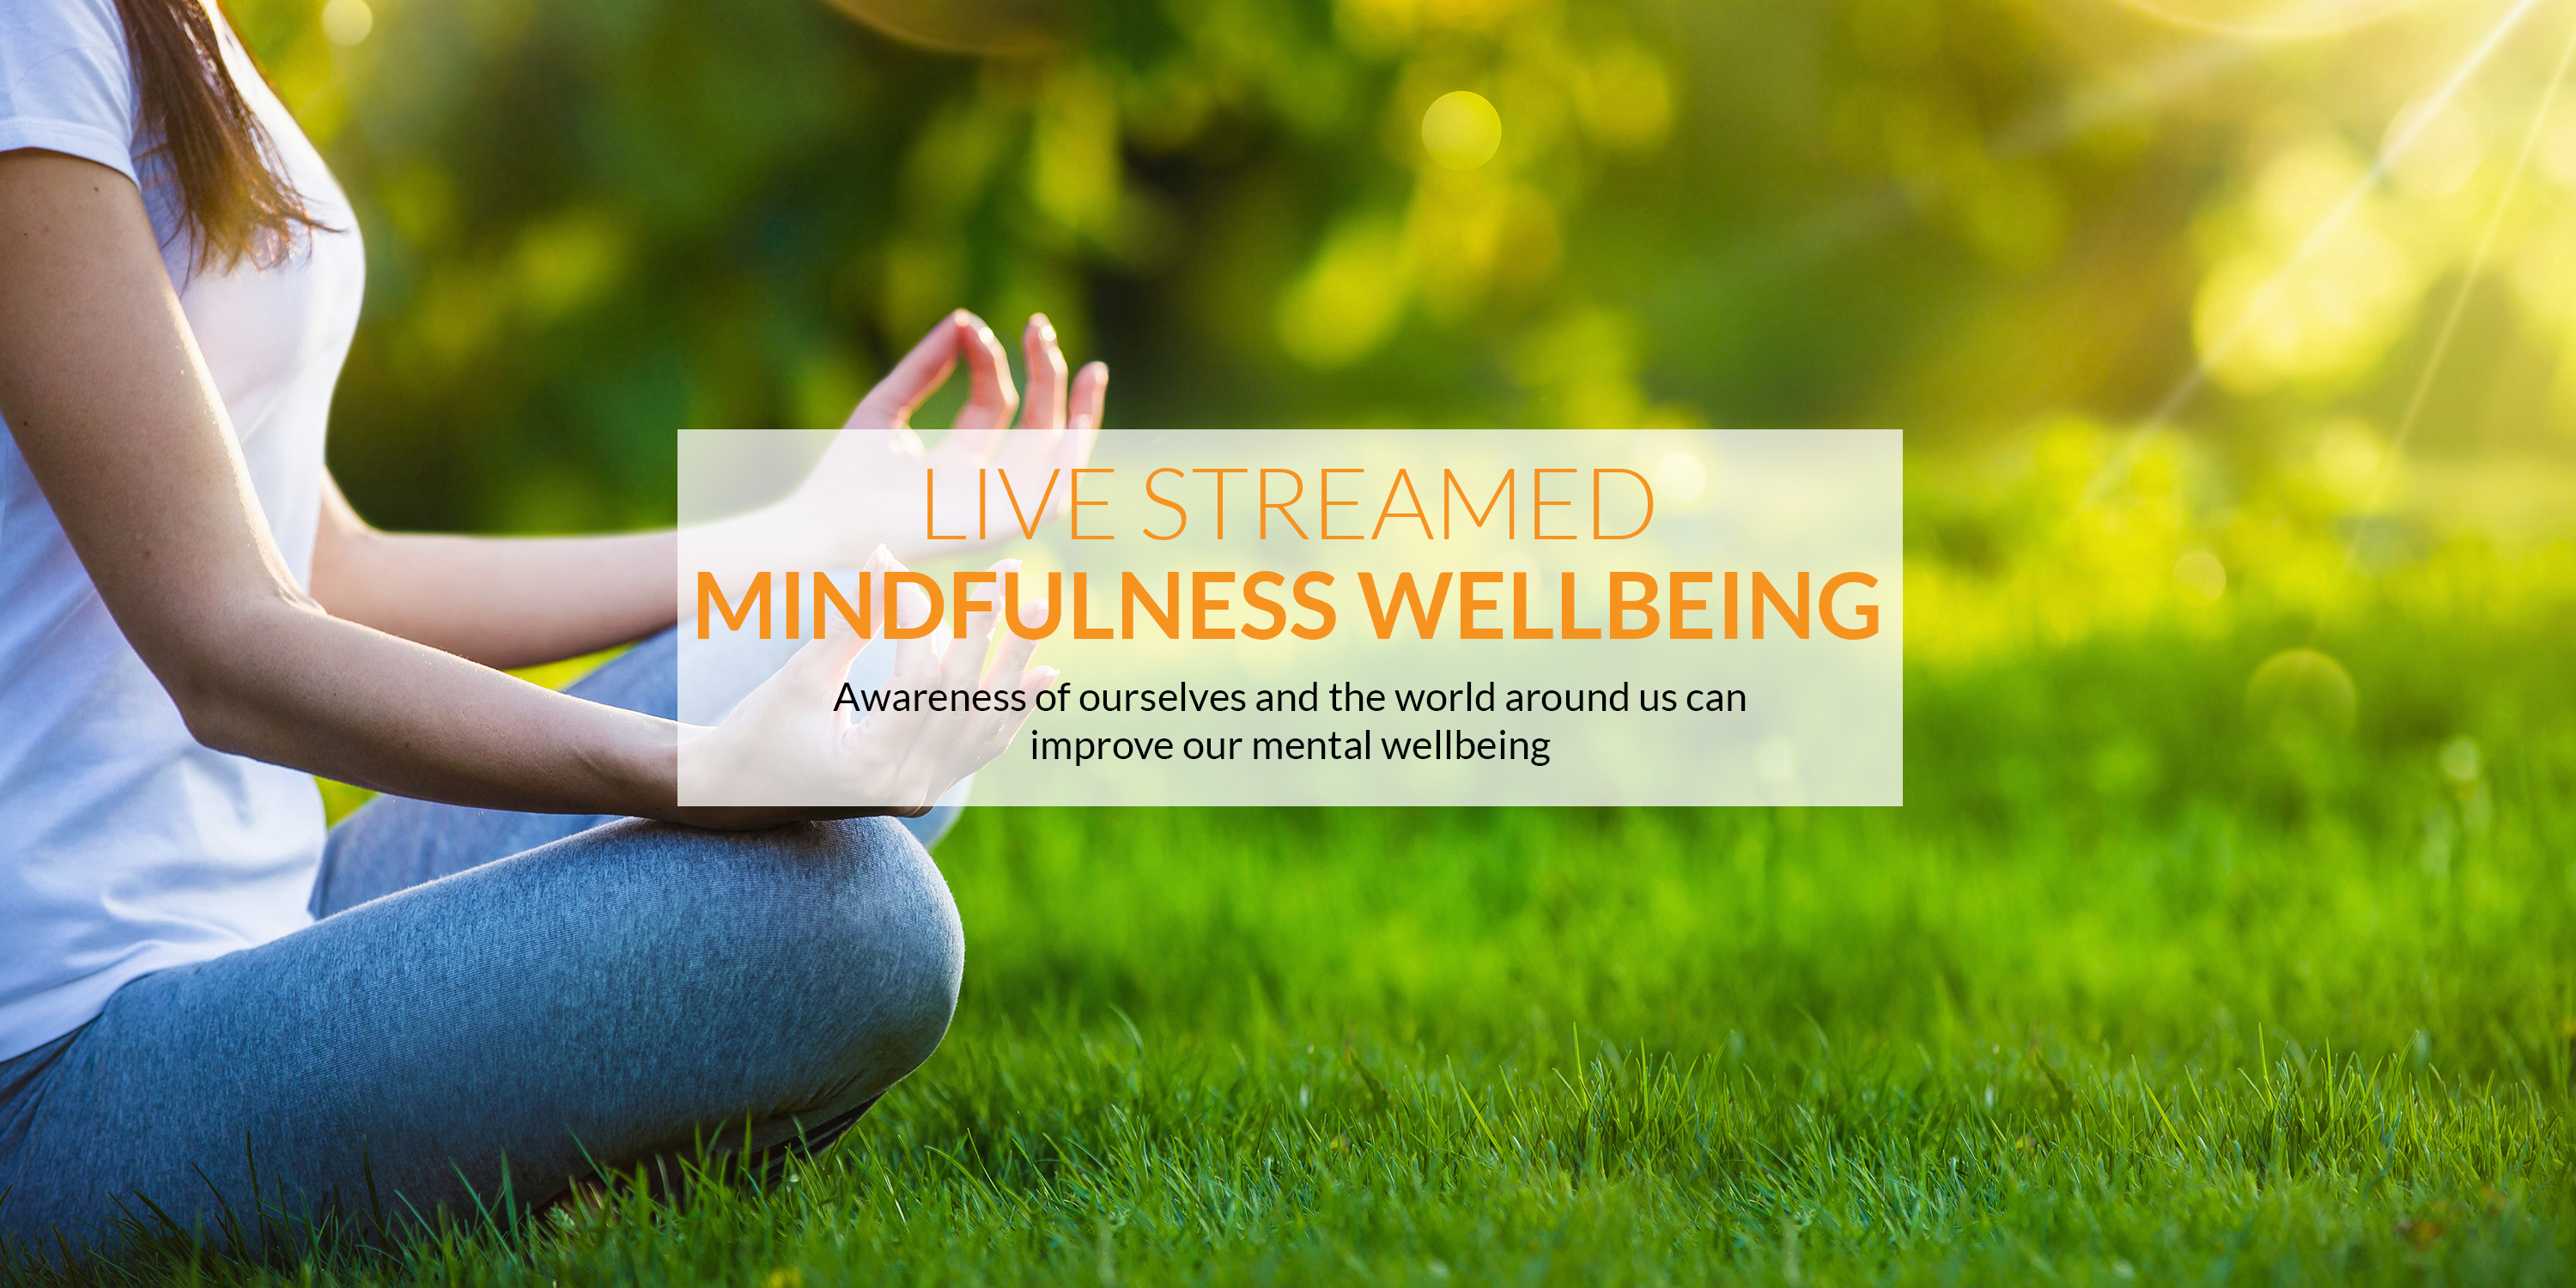 The best Mindfulness Wellbeing live-streamed